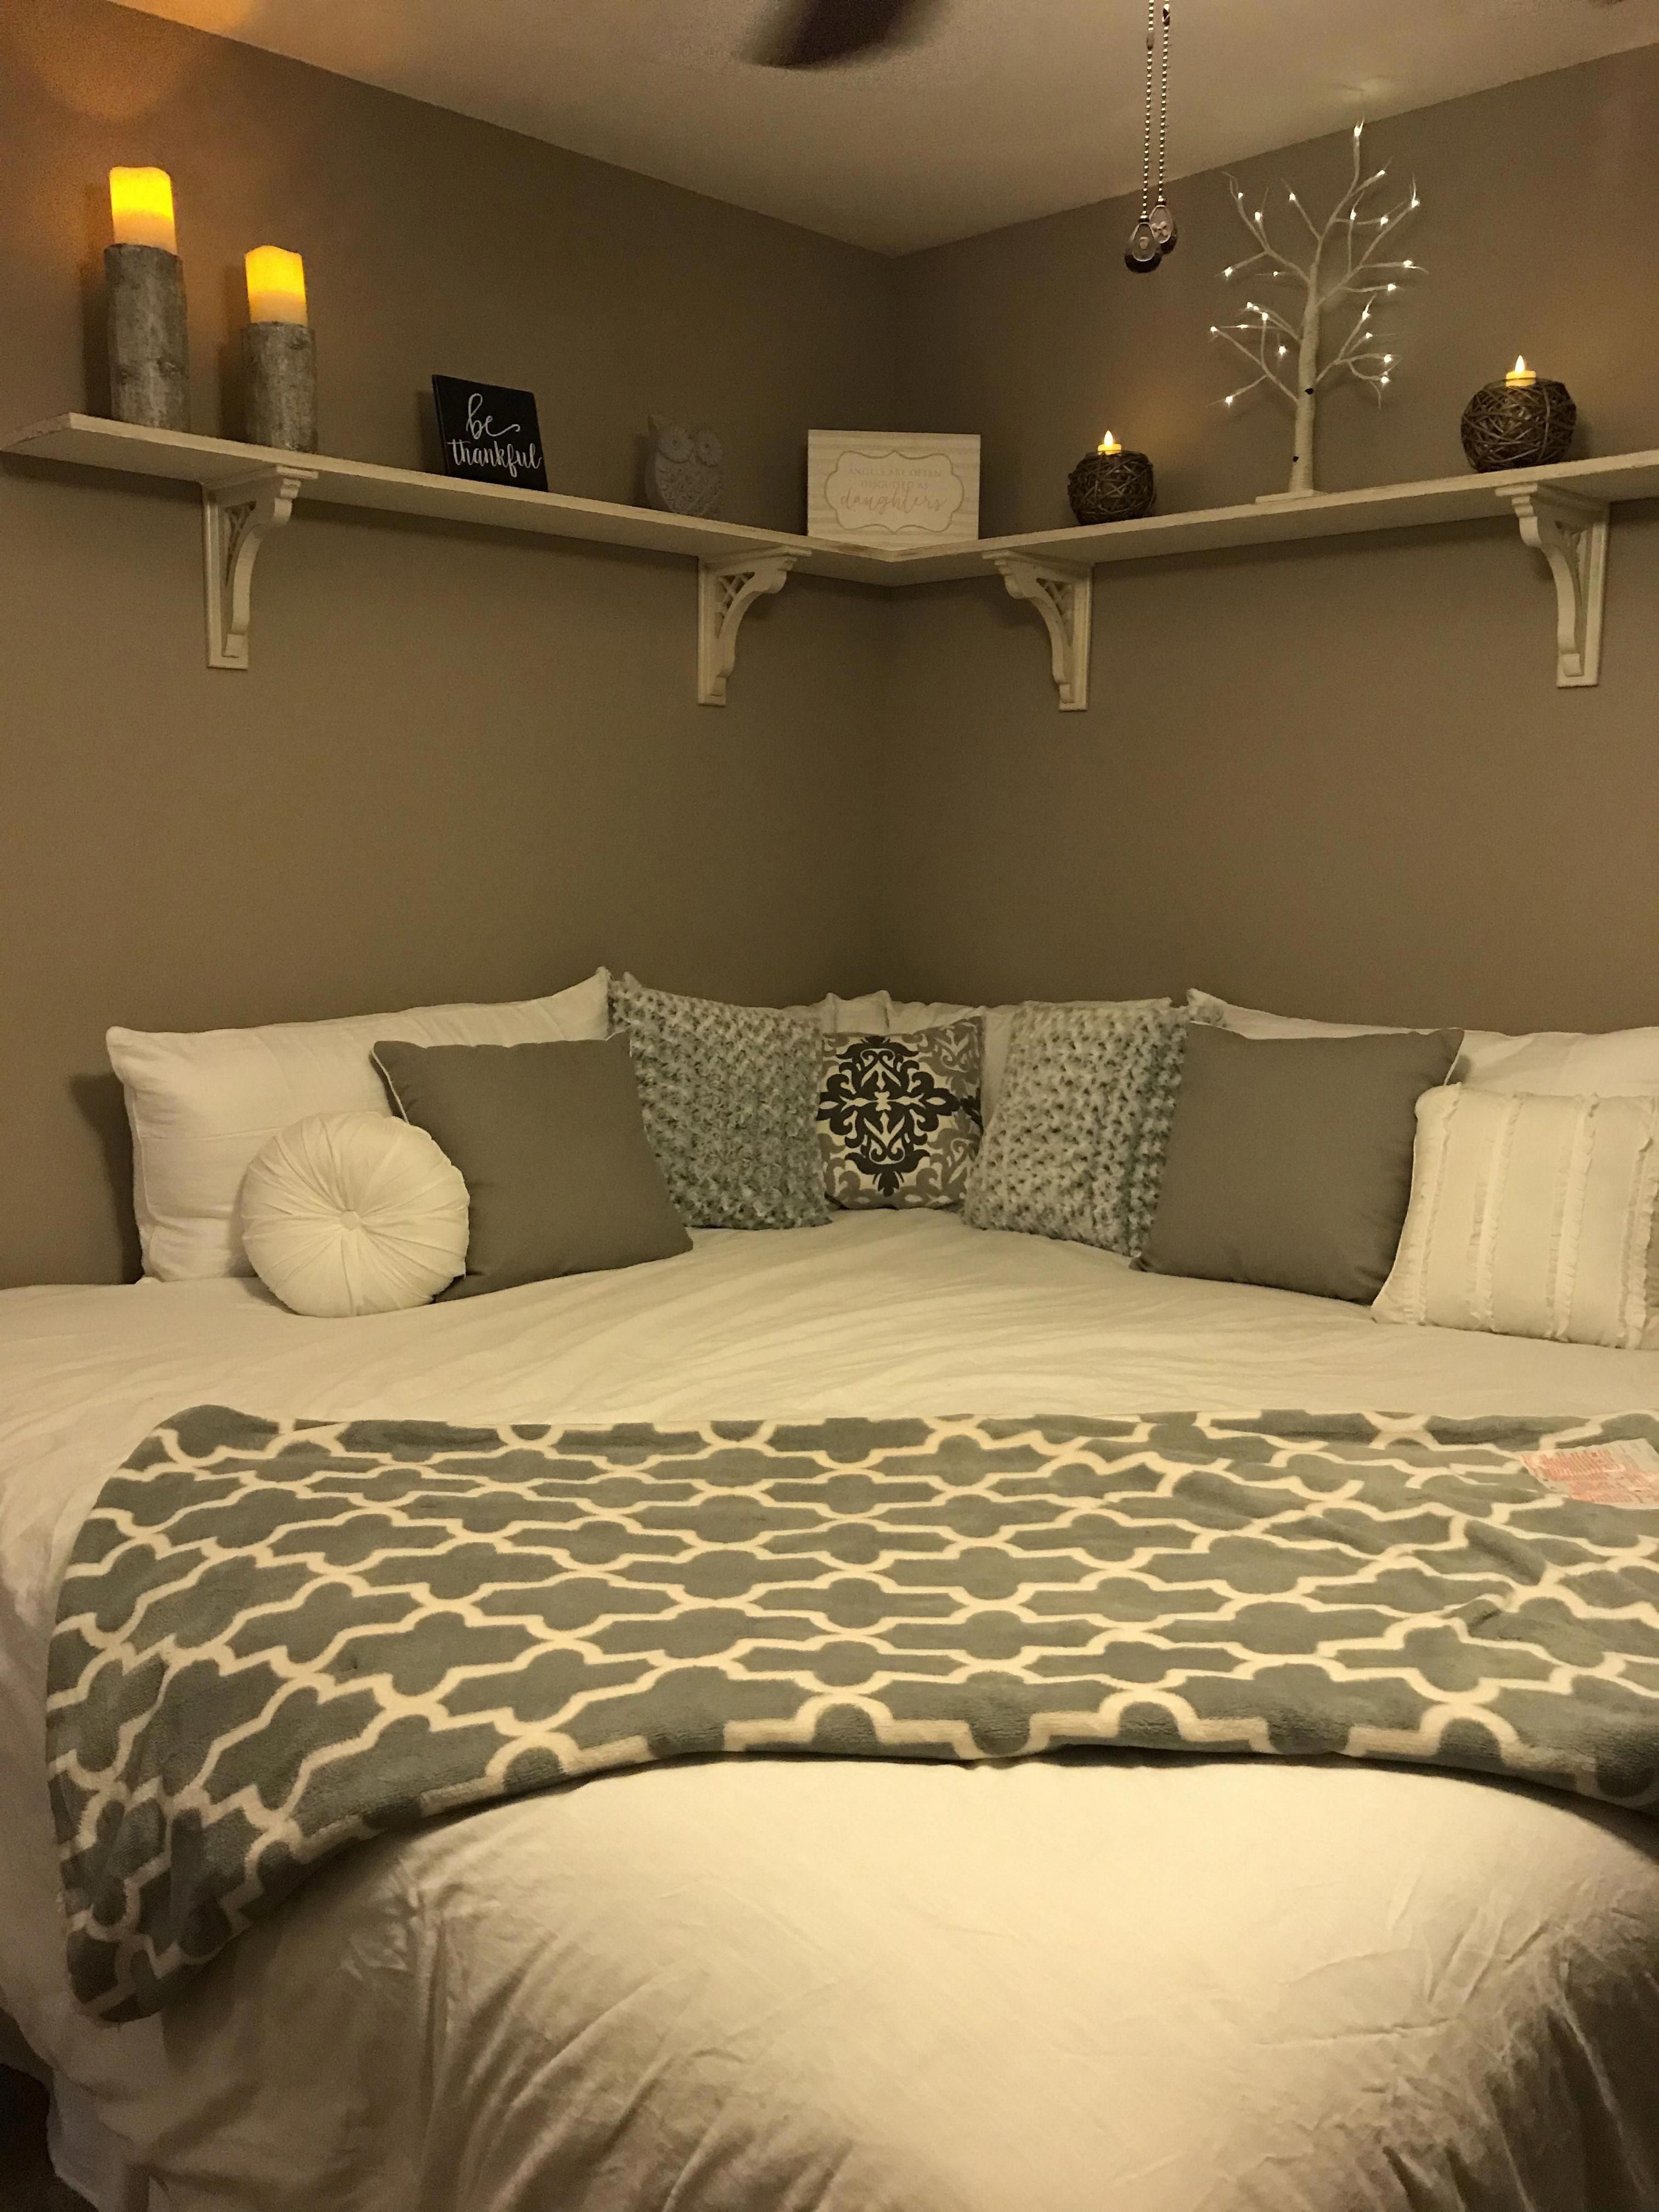 Find Out Even More Details On Bunk Bed Ideas For Teens Visit Our Internet Site Bunkbedideasforteens In 2020 Small Room Bedroom Bedroom Layouts Remodel Bedroom